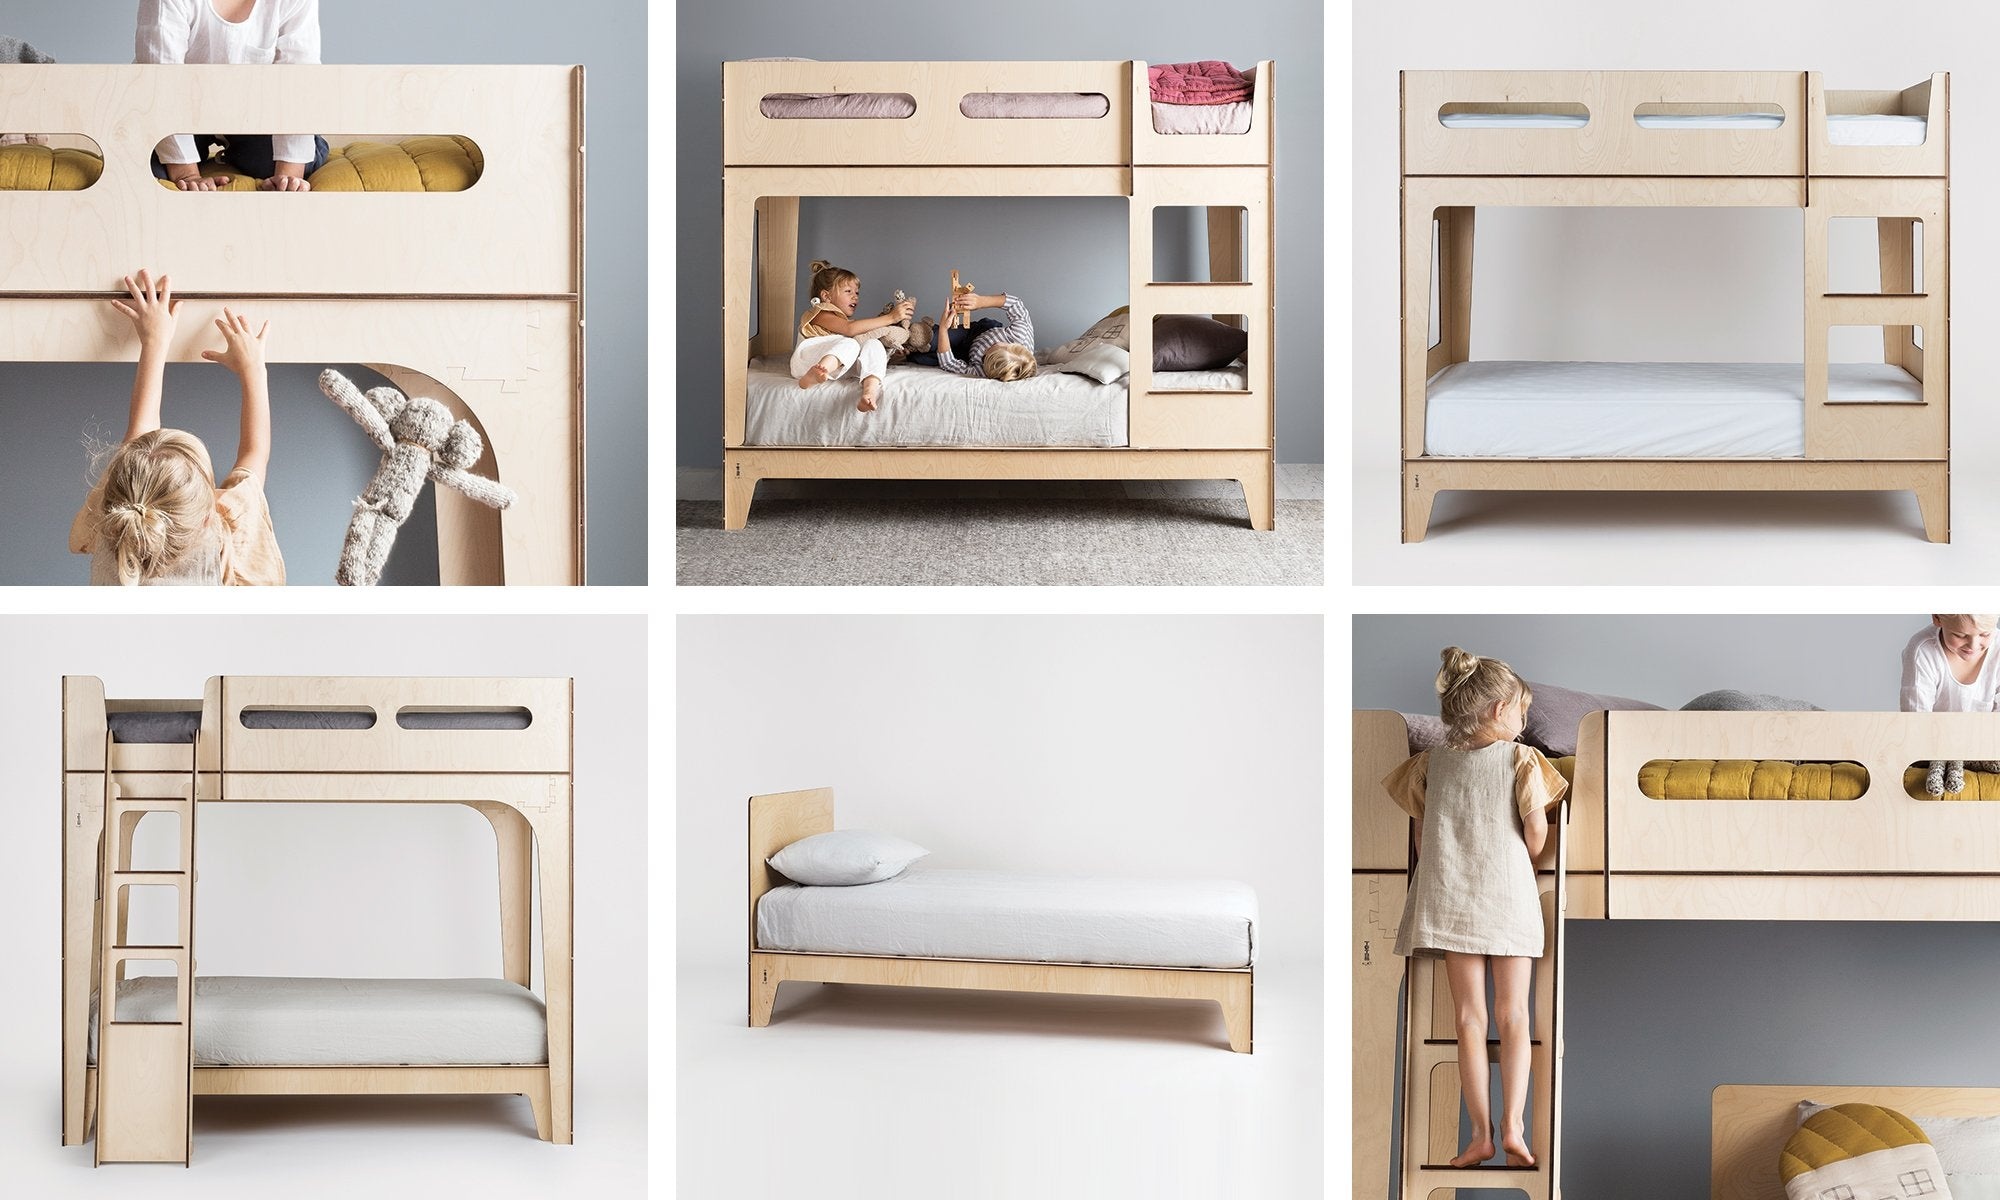 Image of a modern children's bedroom furniture for shared bedrooms